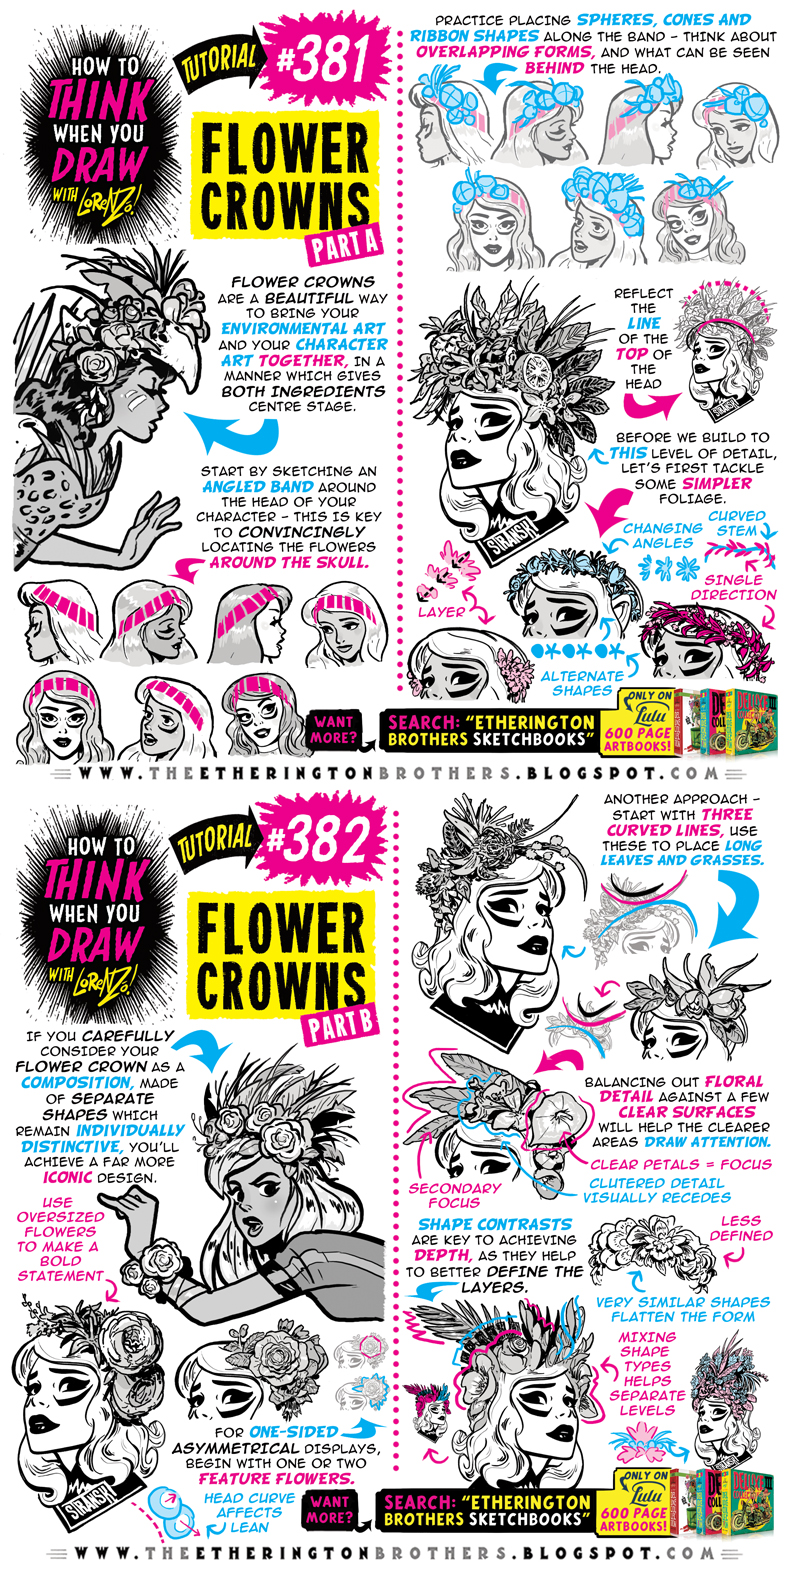 How To Think When You Draw Flower Crowns Tutorial By Etheringtonbrothers On Deviantart